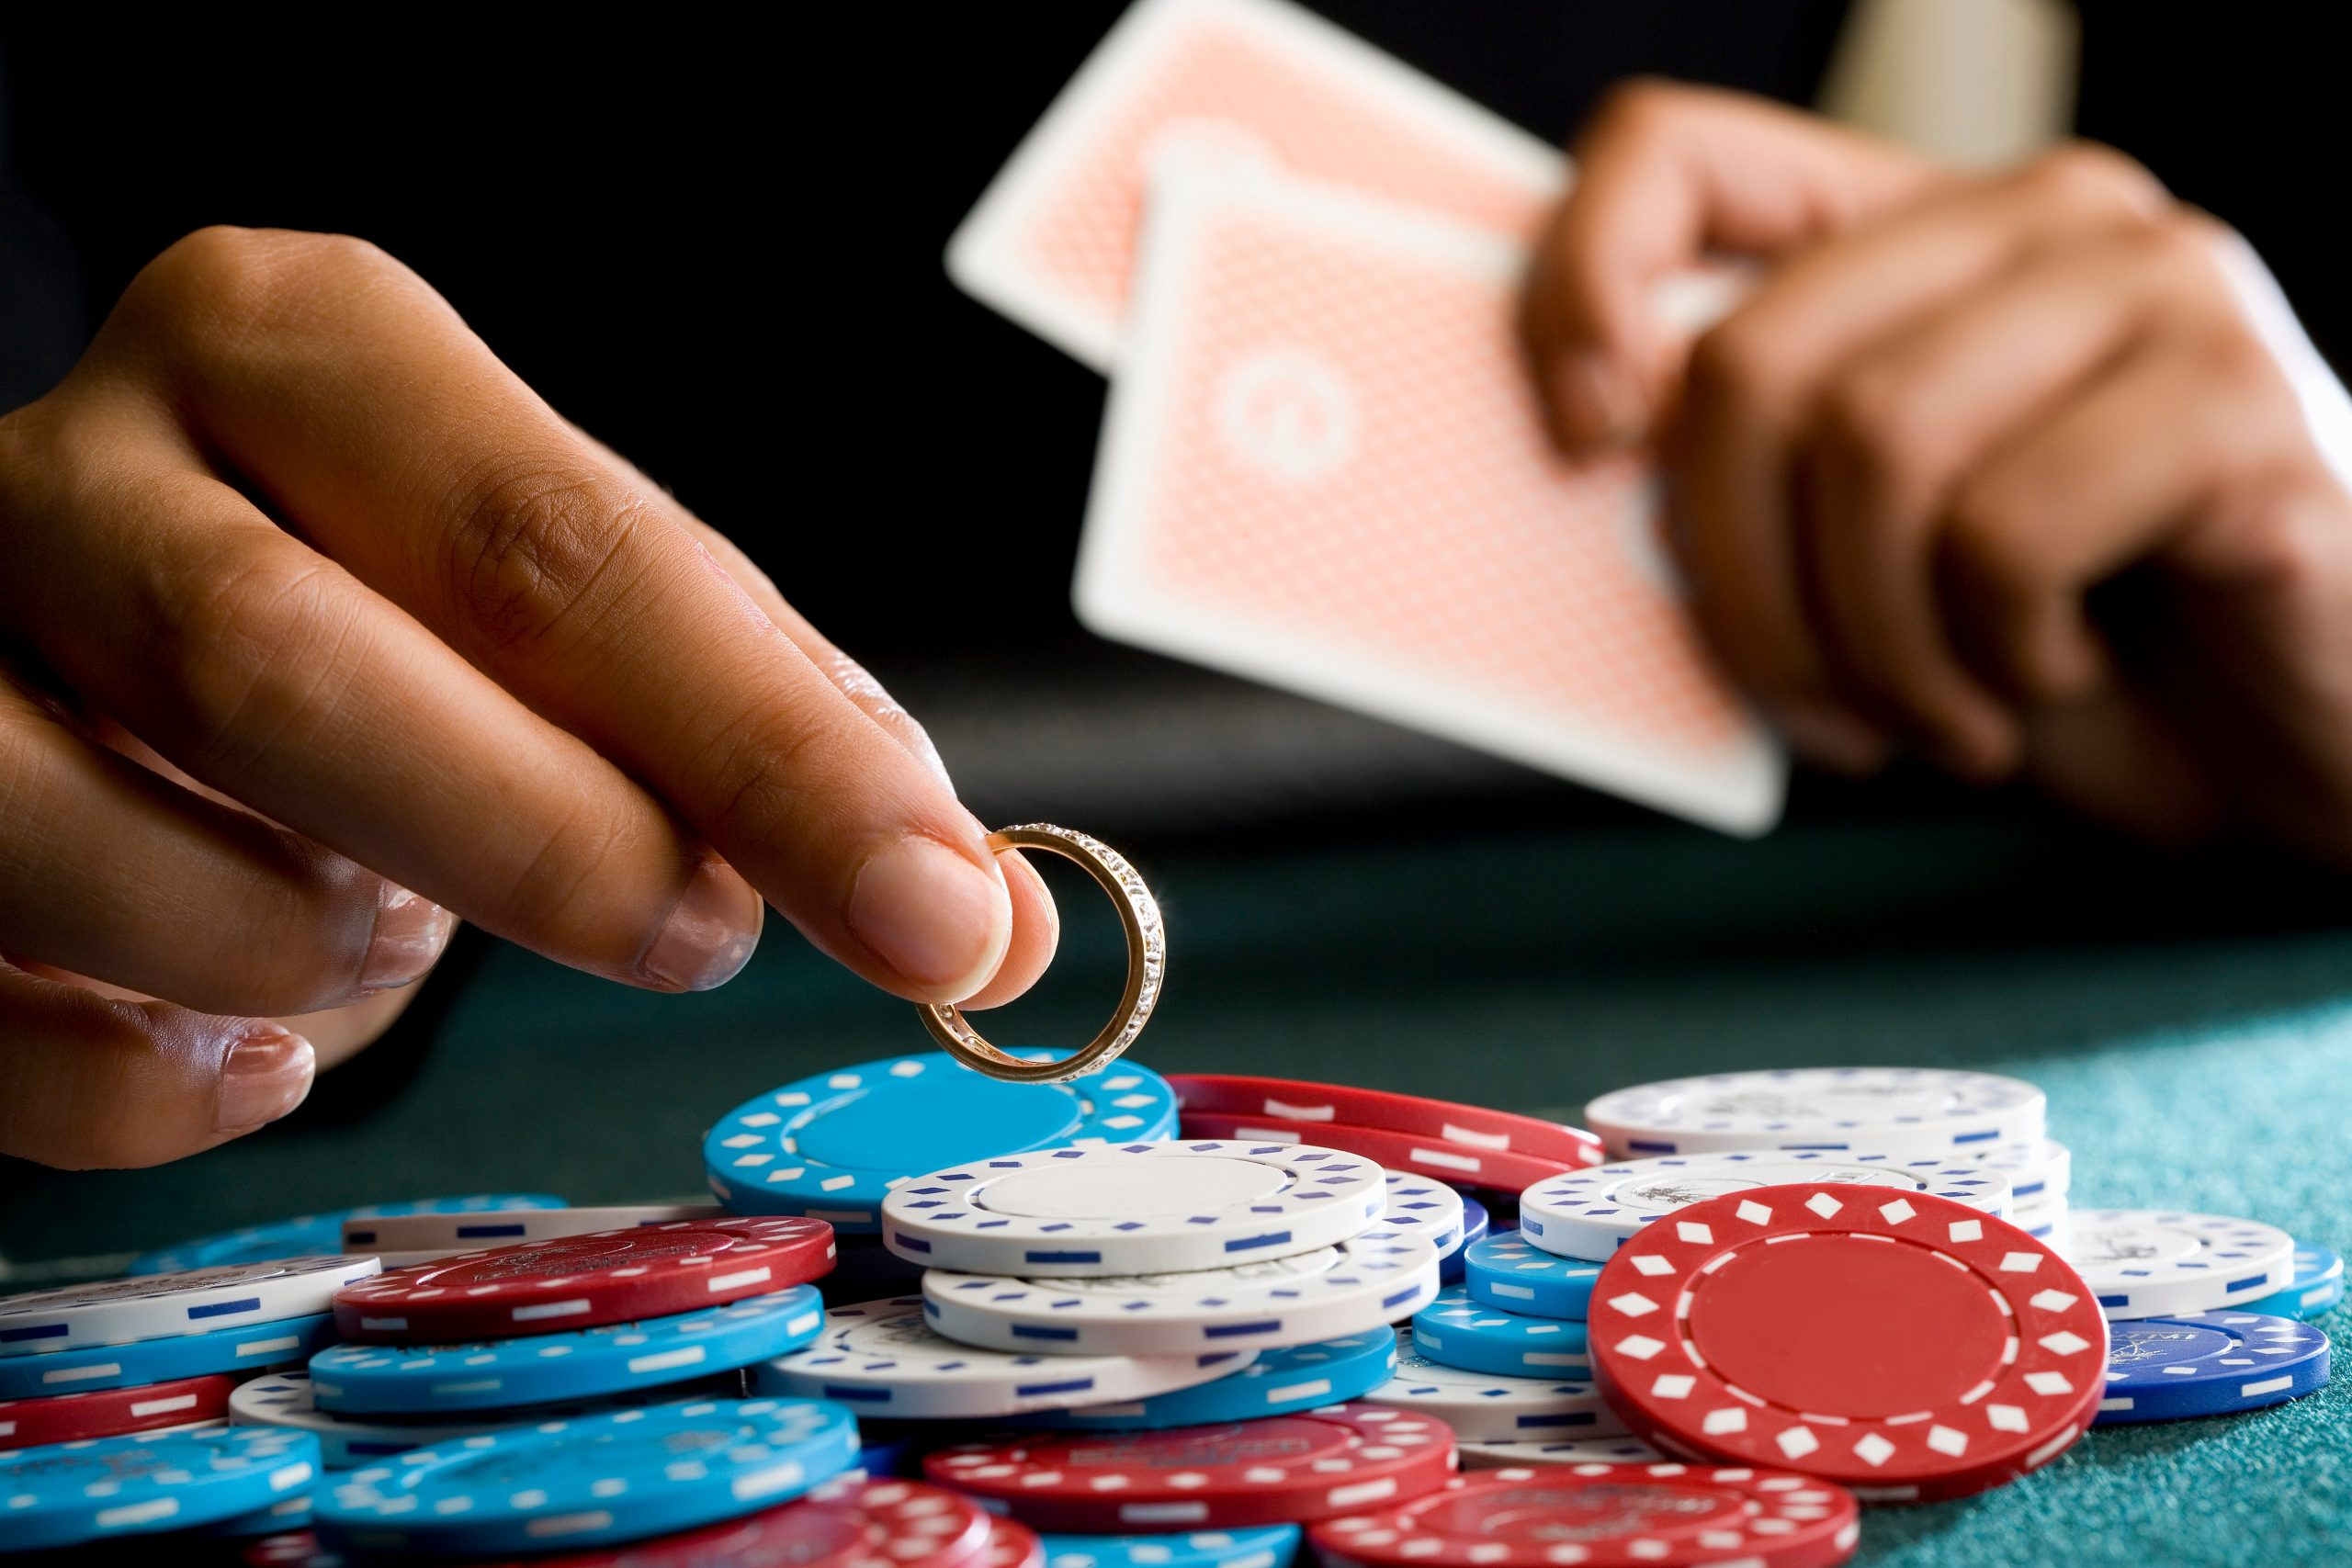 Have Win Or Fun Cash With Your Online Casino Game?